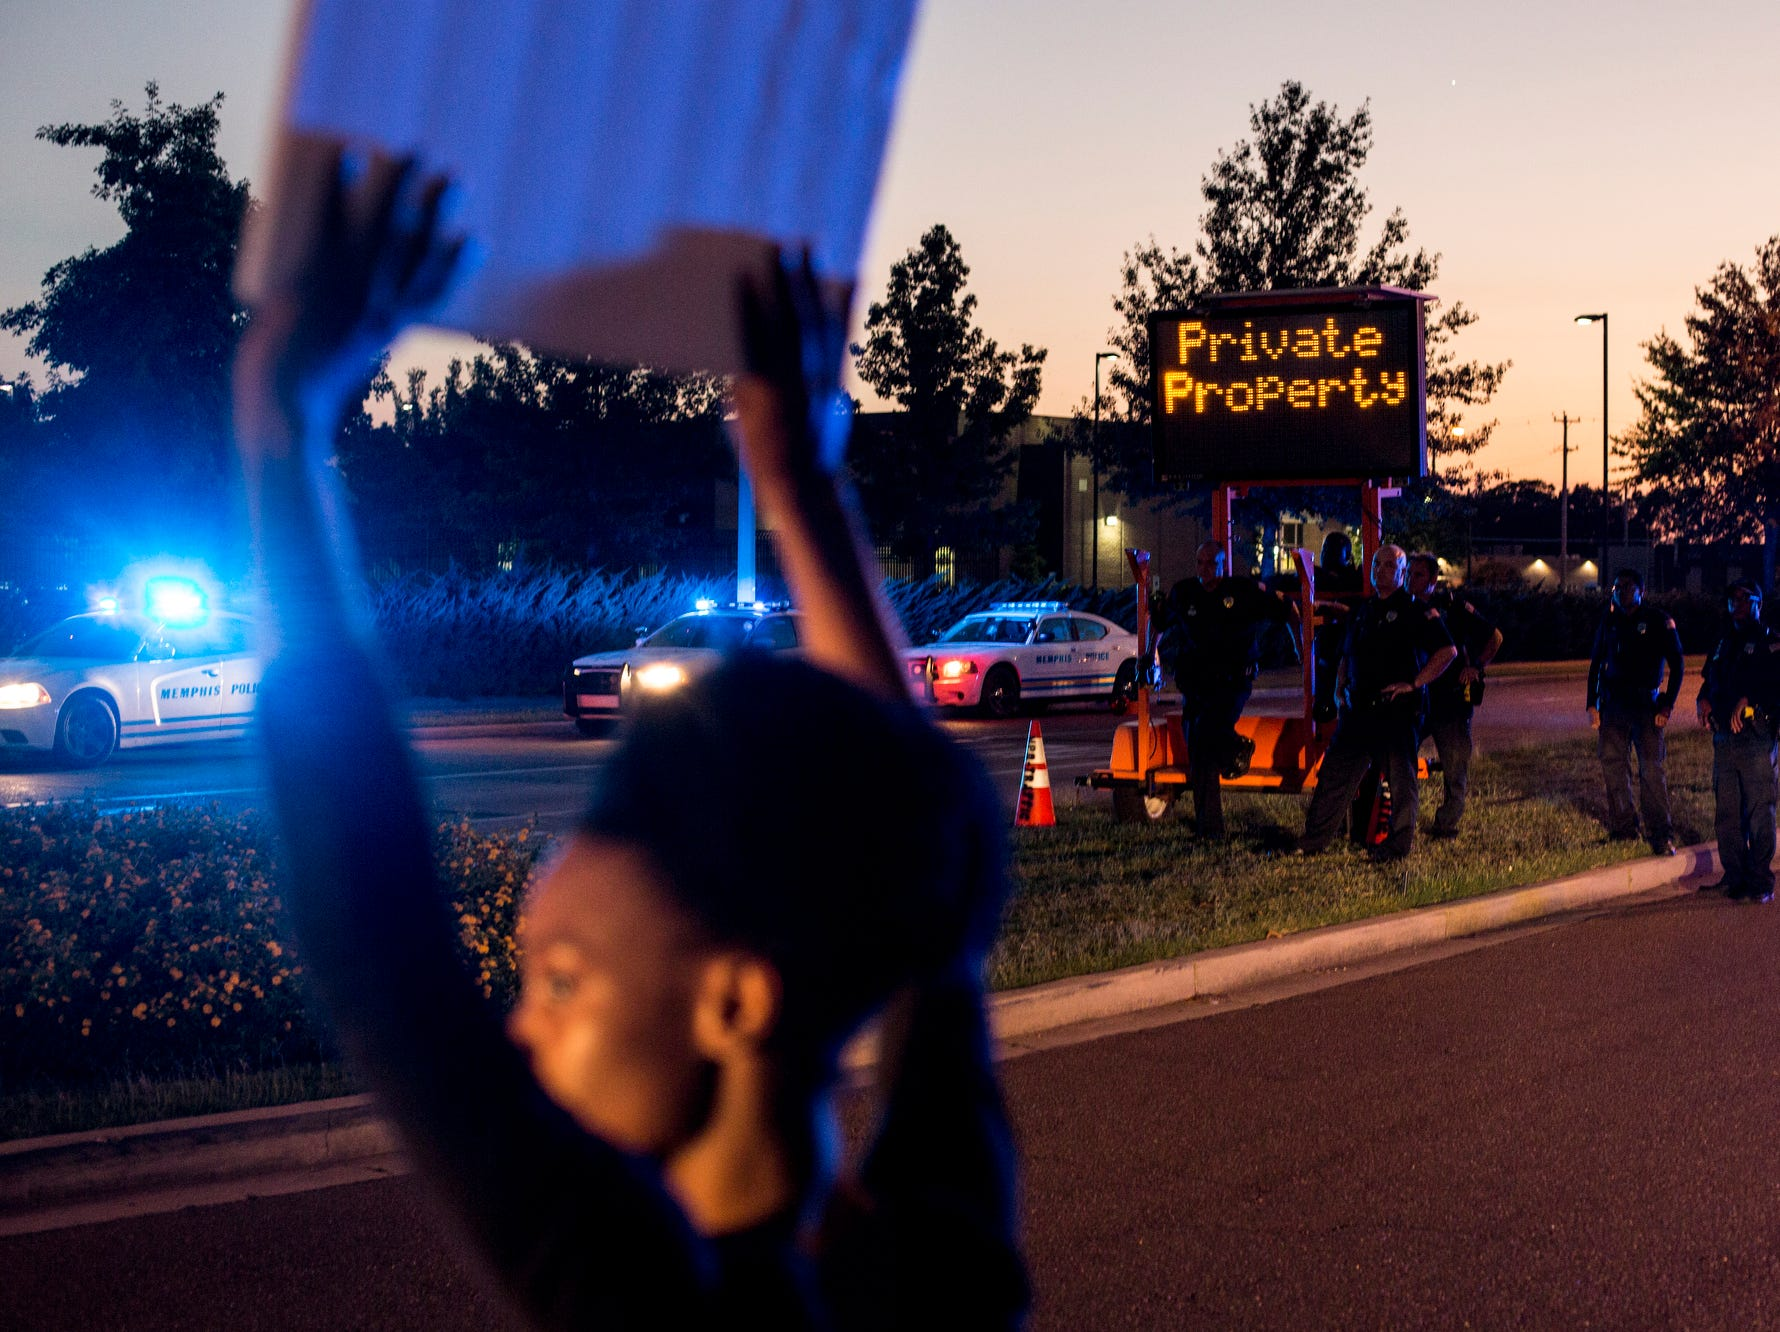 September 19 2018 - Officers watch as Kendra Perry, left, holds a sign along Airways Blvd. near the Memphis Police Department's Airways Station while protesting the officer-involved shooting of Martavious Banks. The protests came after news that officers involved in the shooting of Banks may have improperly switched off their dashboard or body cameras, or didn't turn them on.